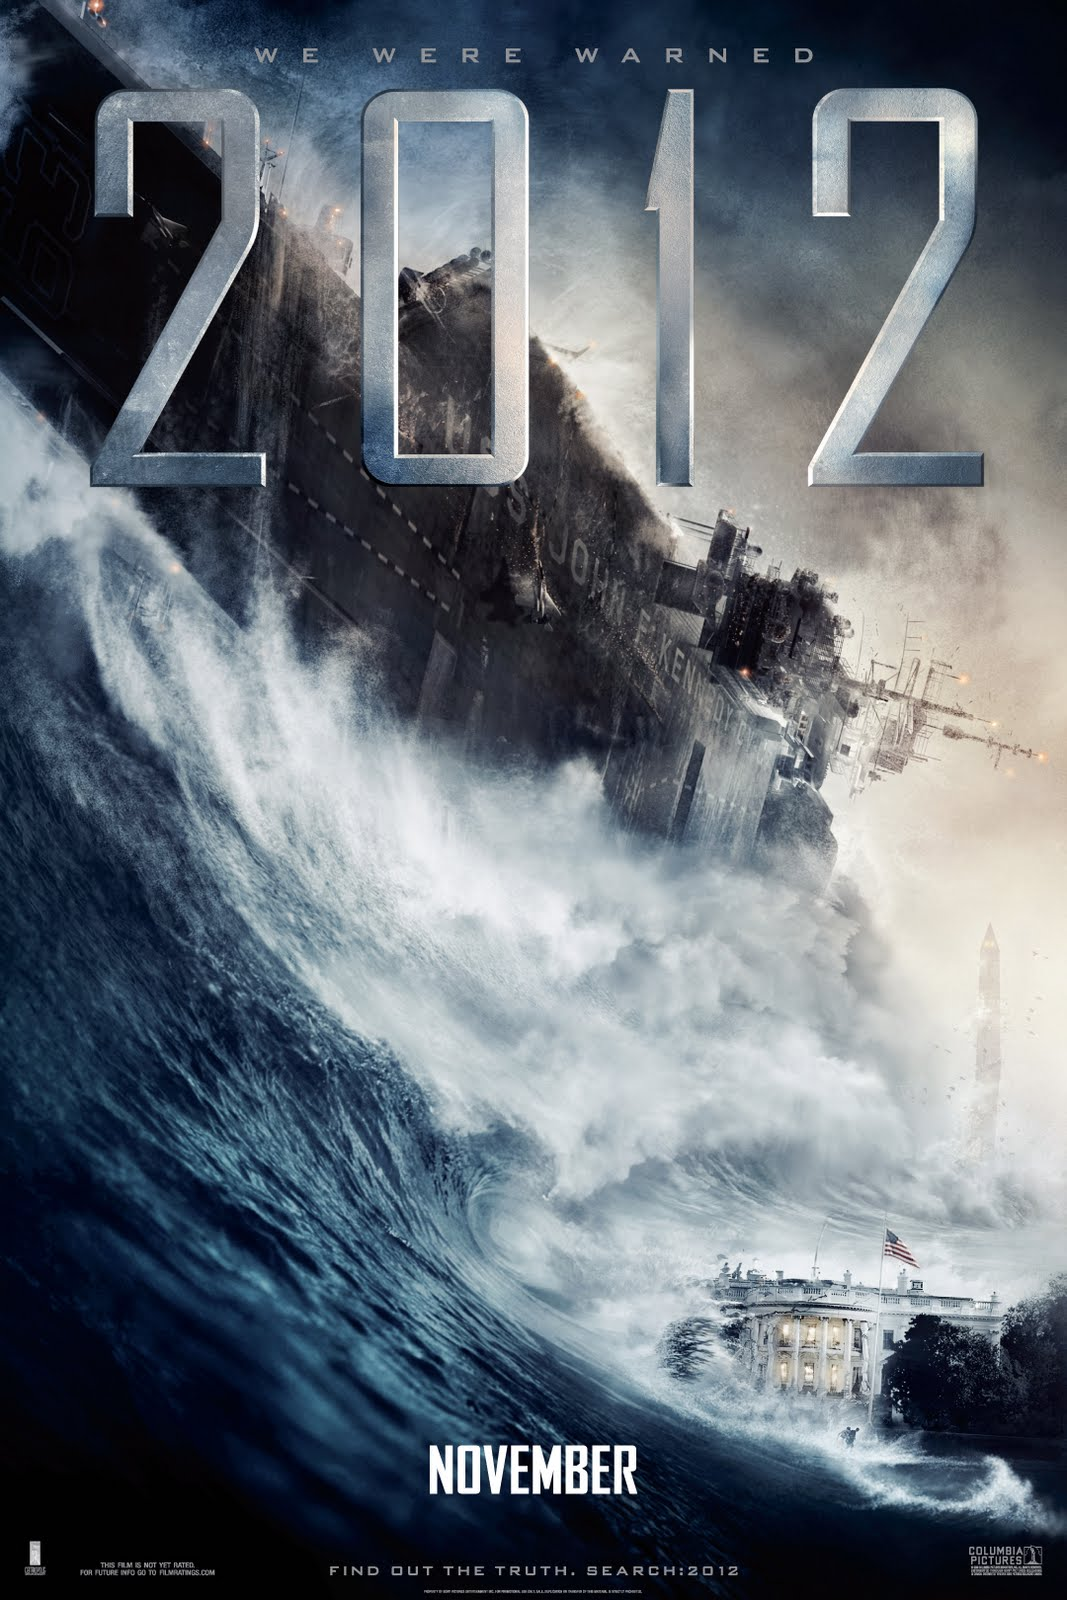 2012 movie Too scary 2 watch now presents a best of list of 2012 horror films (arranged alphabetically) that we believe may be worth checking out, if you love scary movies like we do.